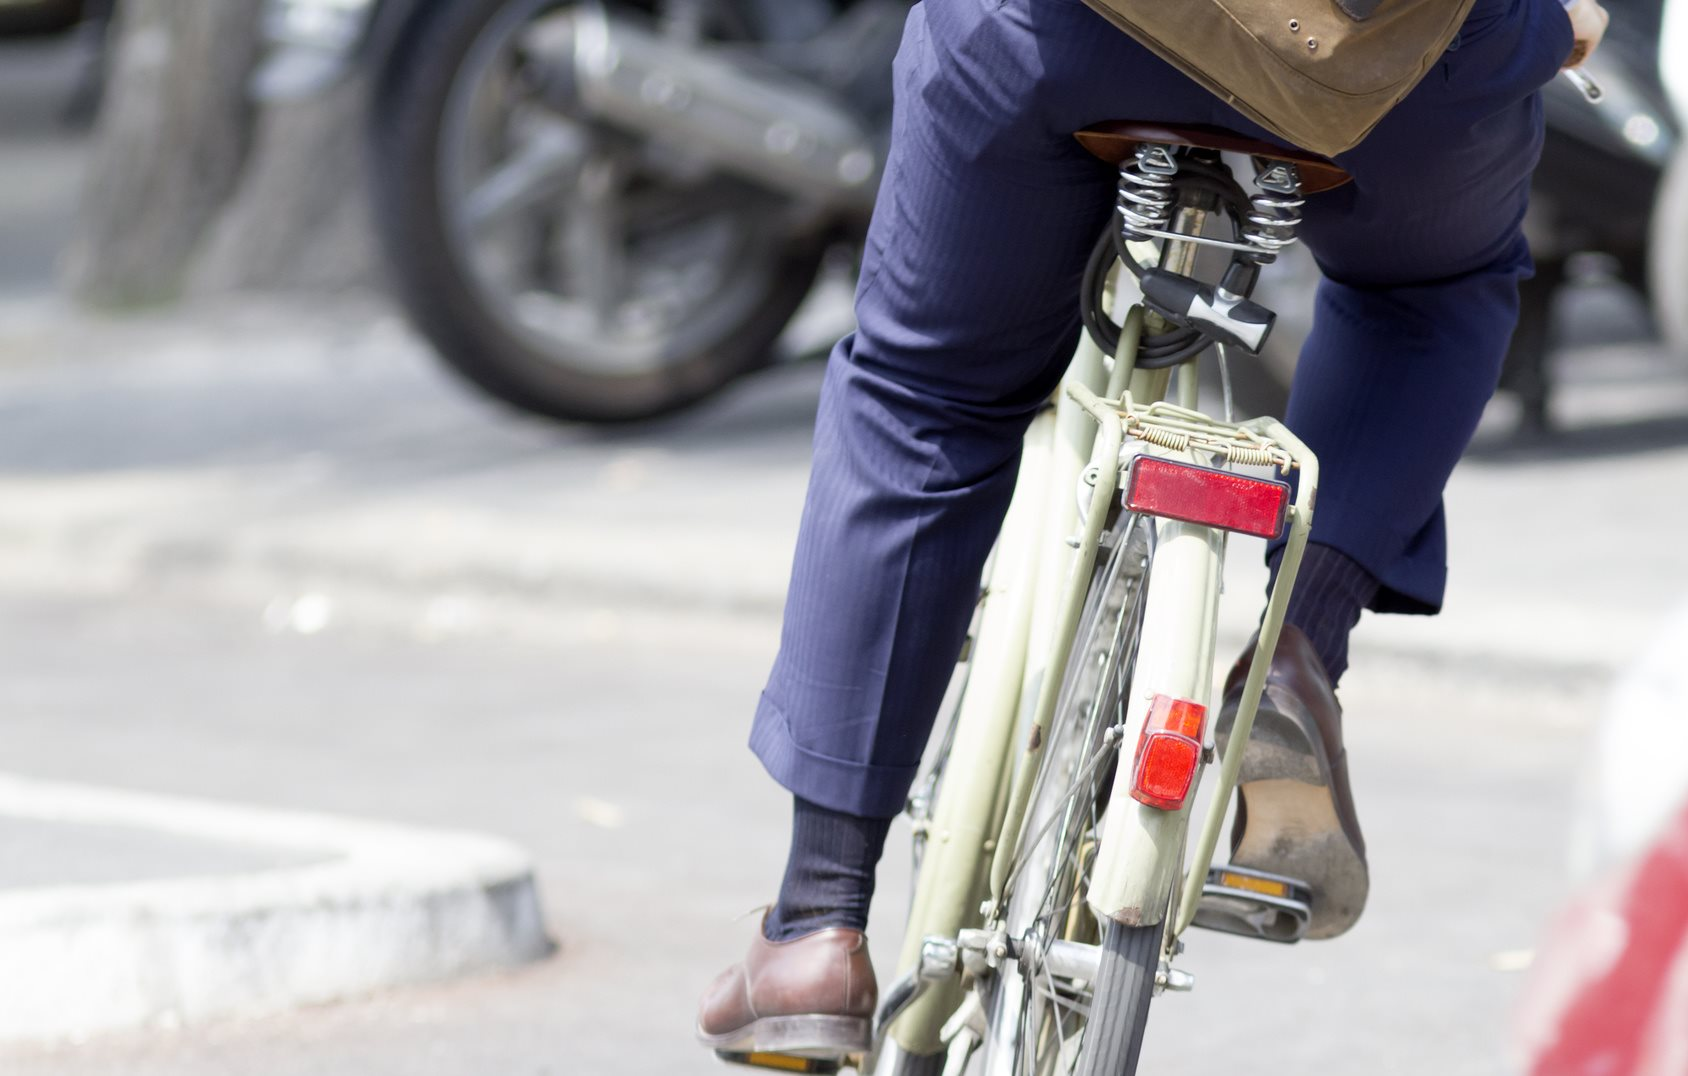 Person In Business Suit Commuting On Bicycle